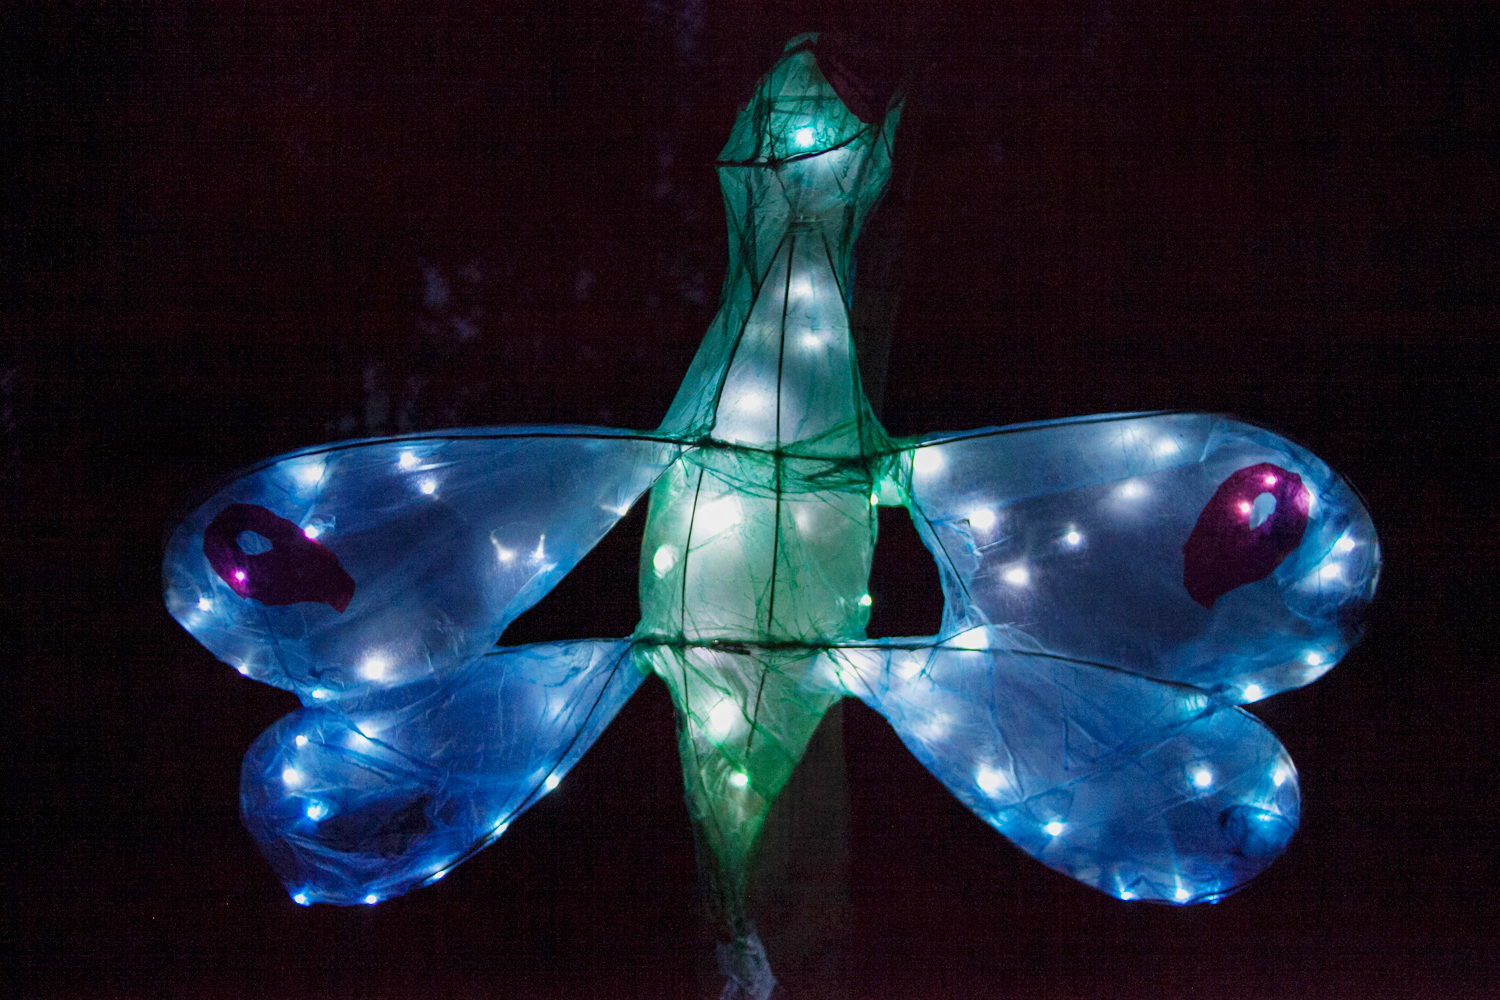 An illumines large Green dragonfly lantern with bright blue and red wings and white lights